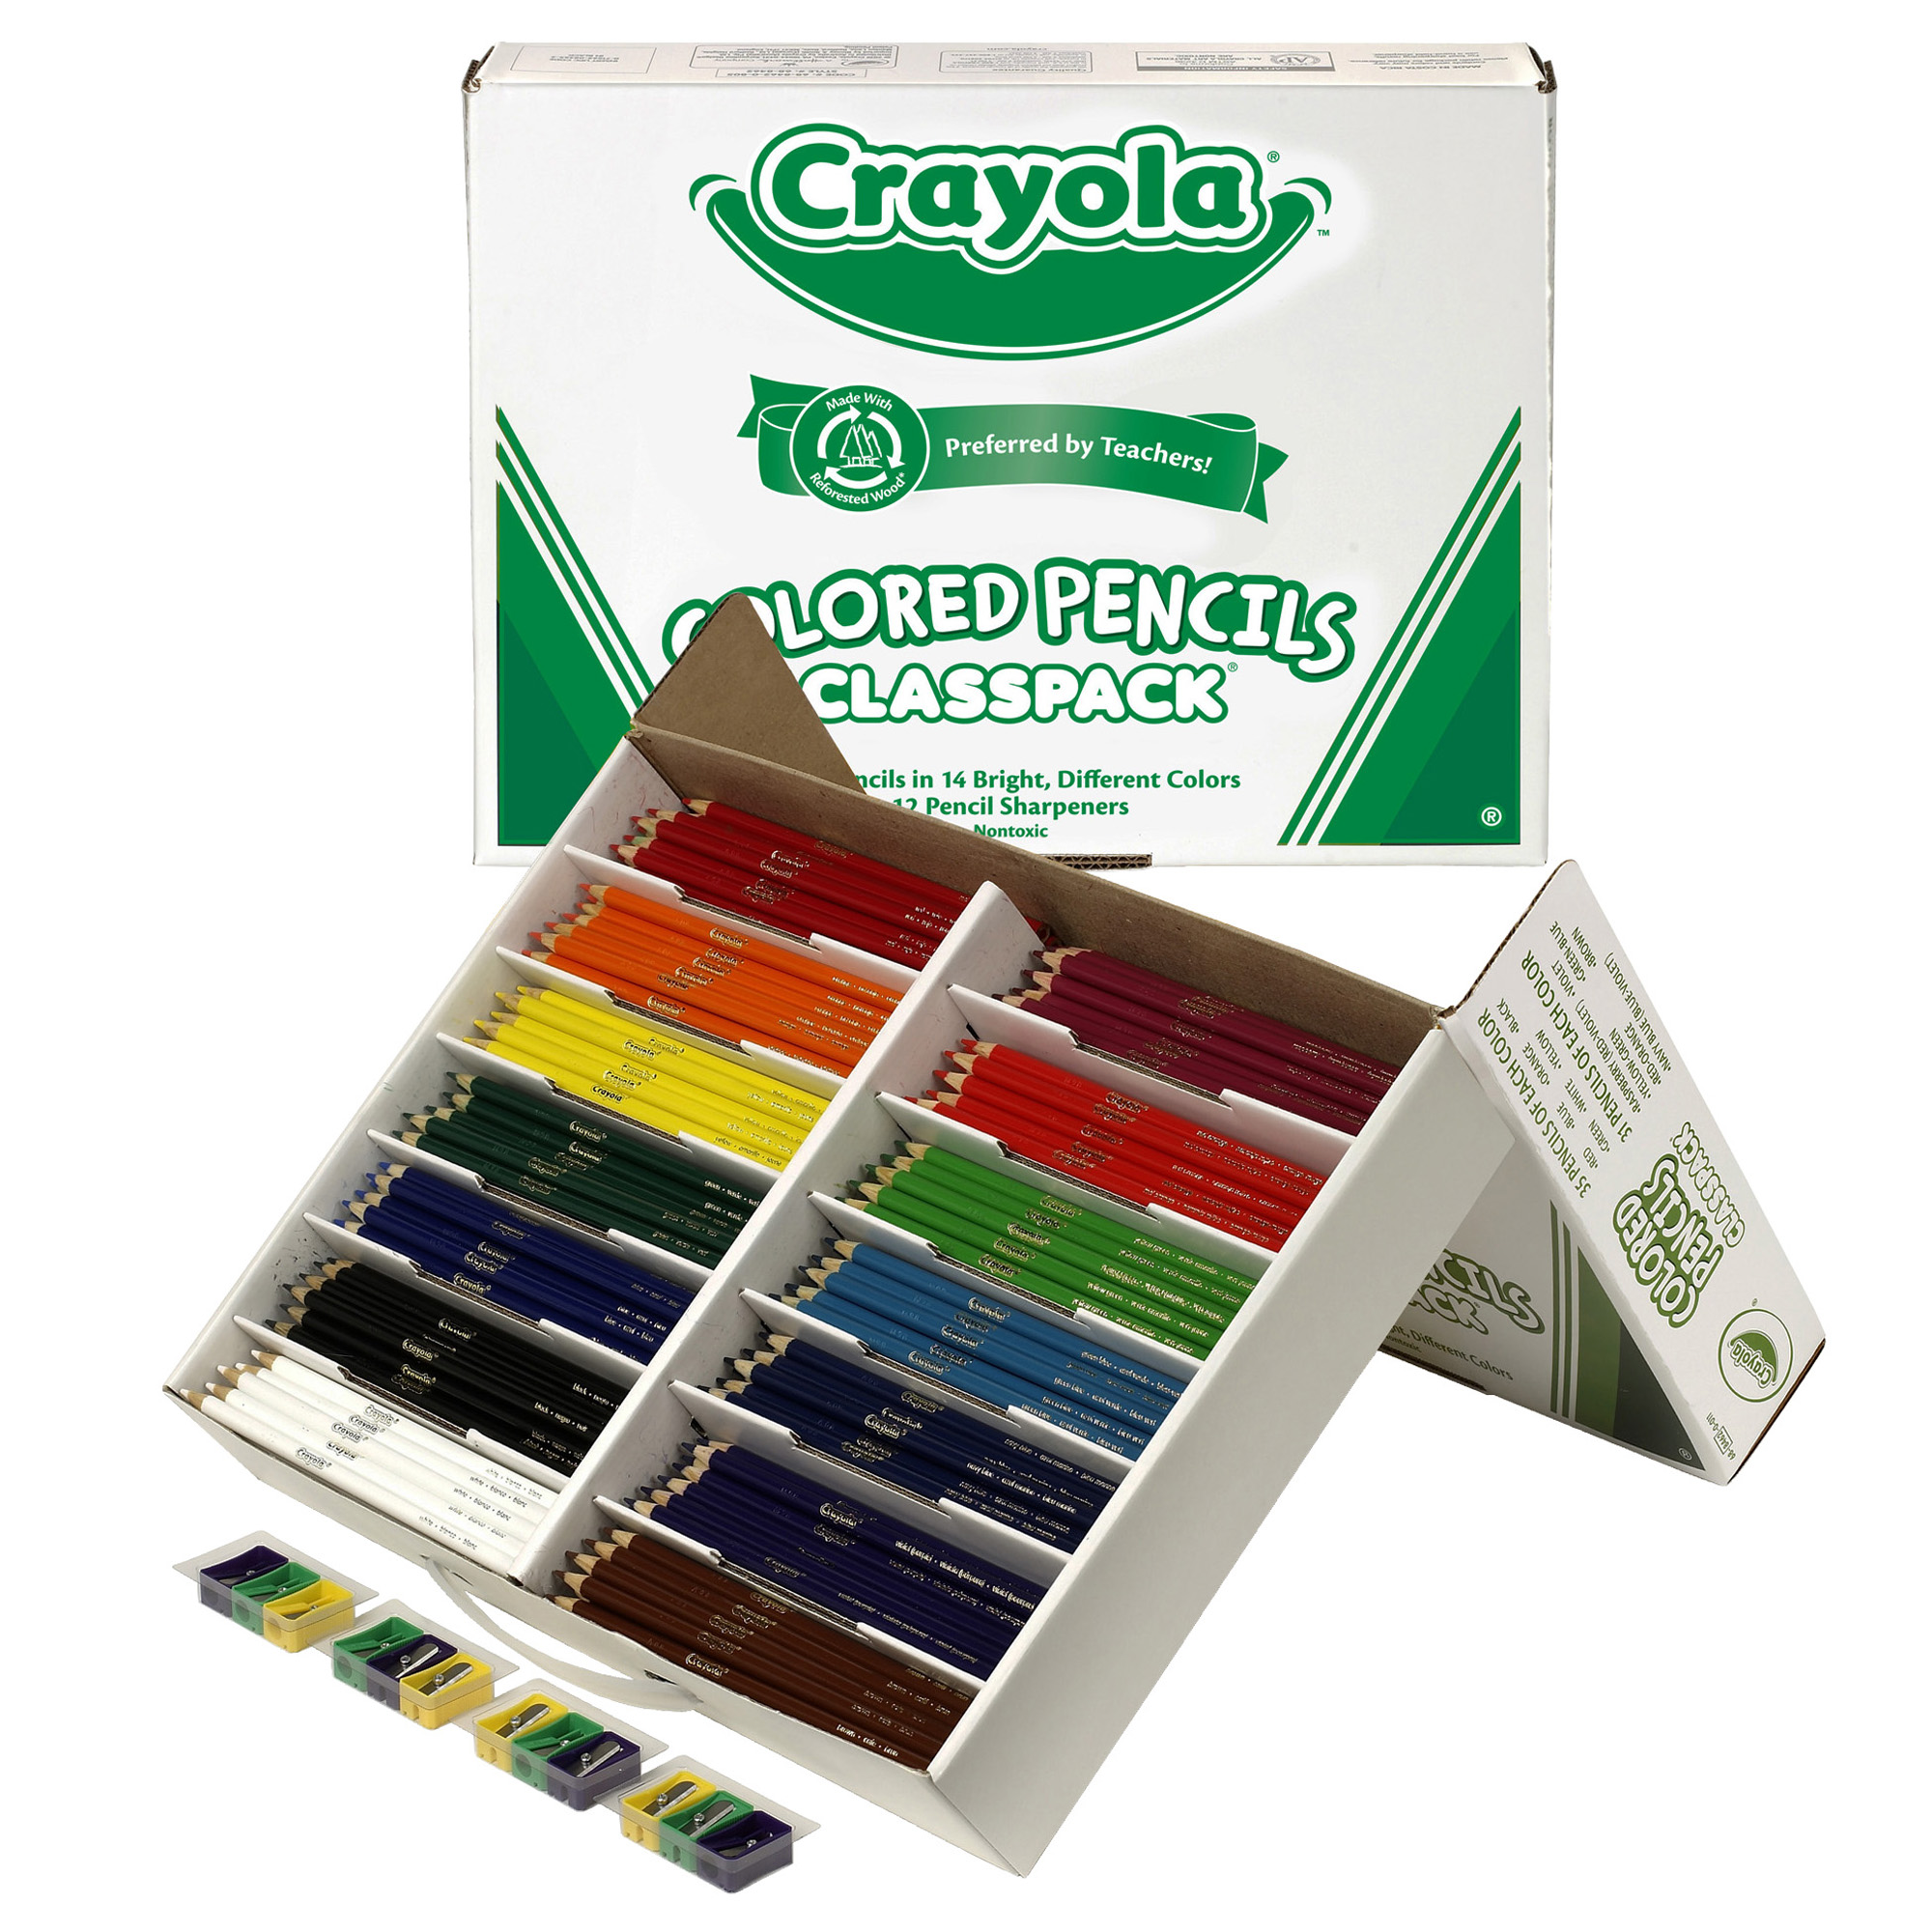 Crayola® Colored Pencil Classpack, 14 Colors, 462 Count